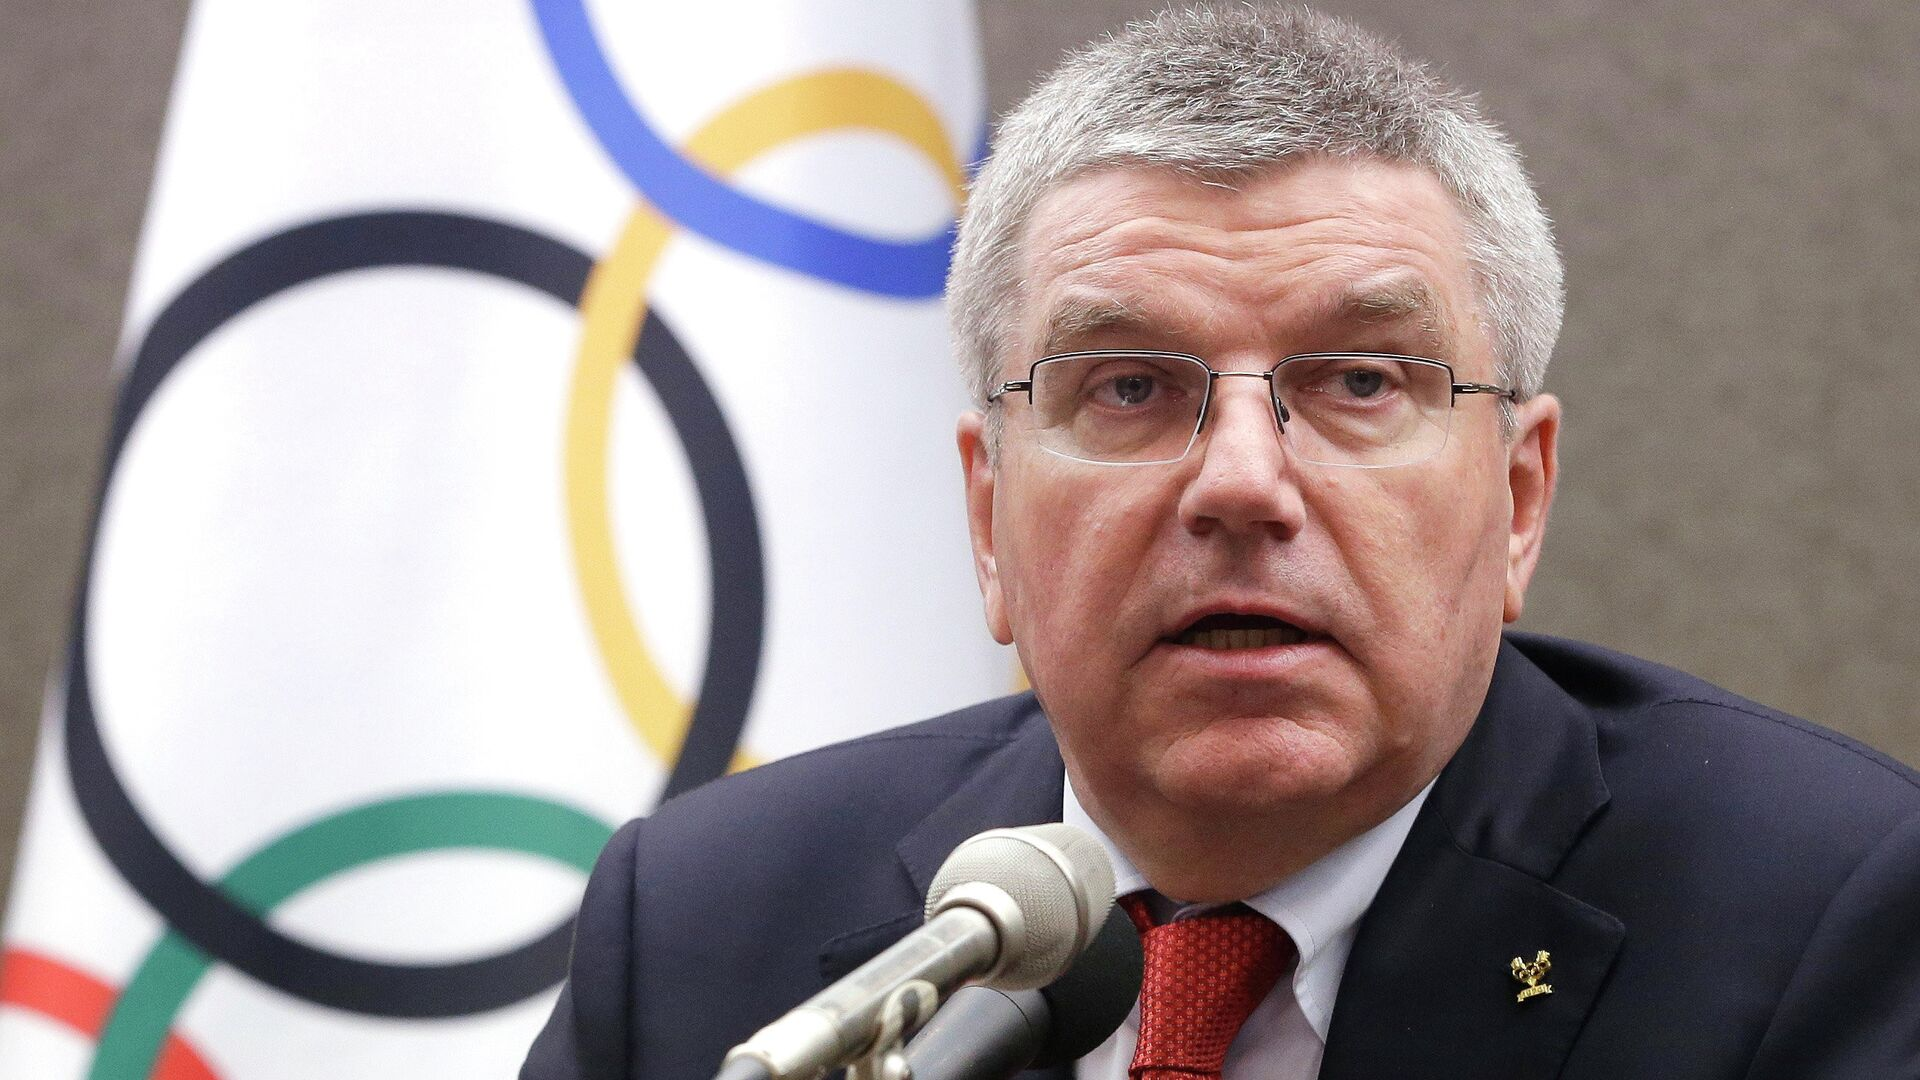 International Olympic Committee (IOC) President Thomas Bach speaks during a press conference in Seoul, South Korea, Wednesday, Aug. 19, 2015 - Sputnik Mundo, 1920, 08.08.2021